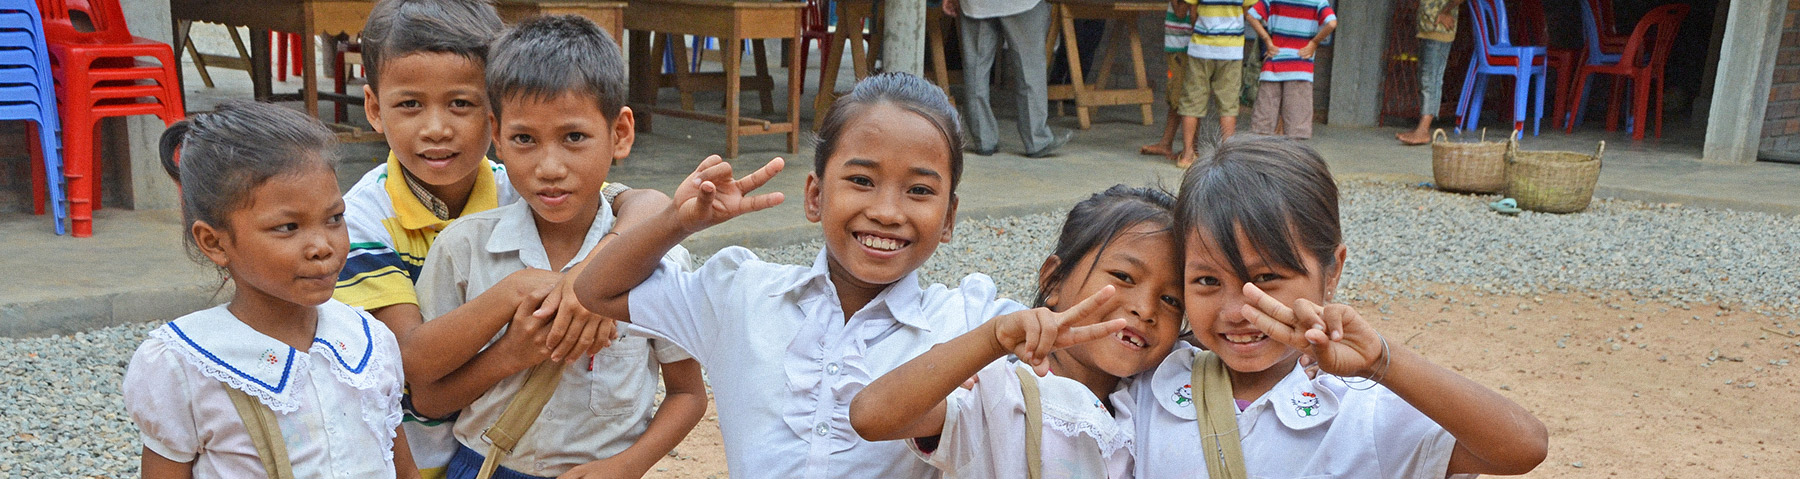 Opportunity Cambodia Students having fun